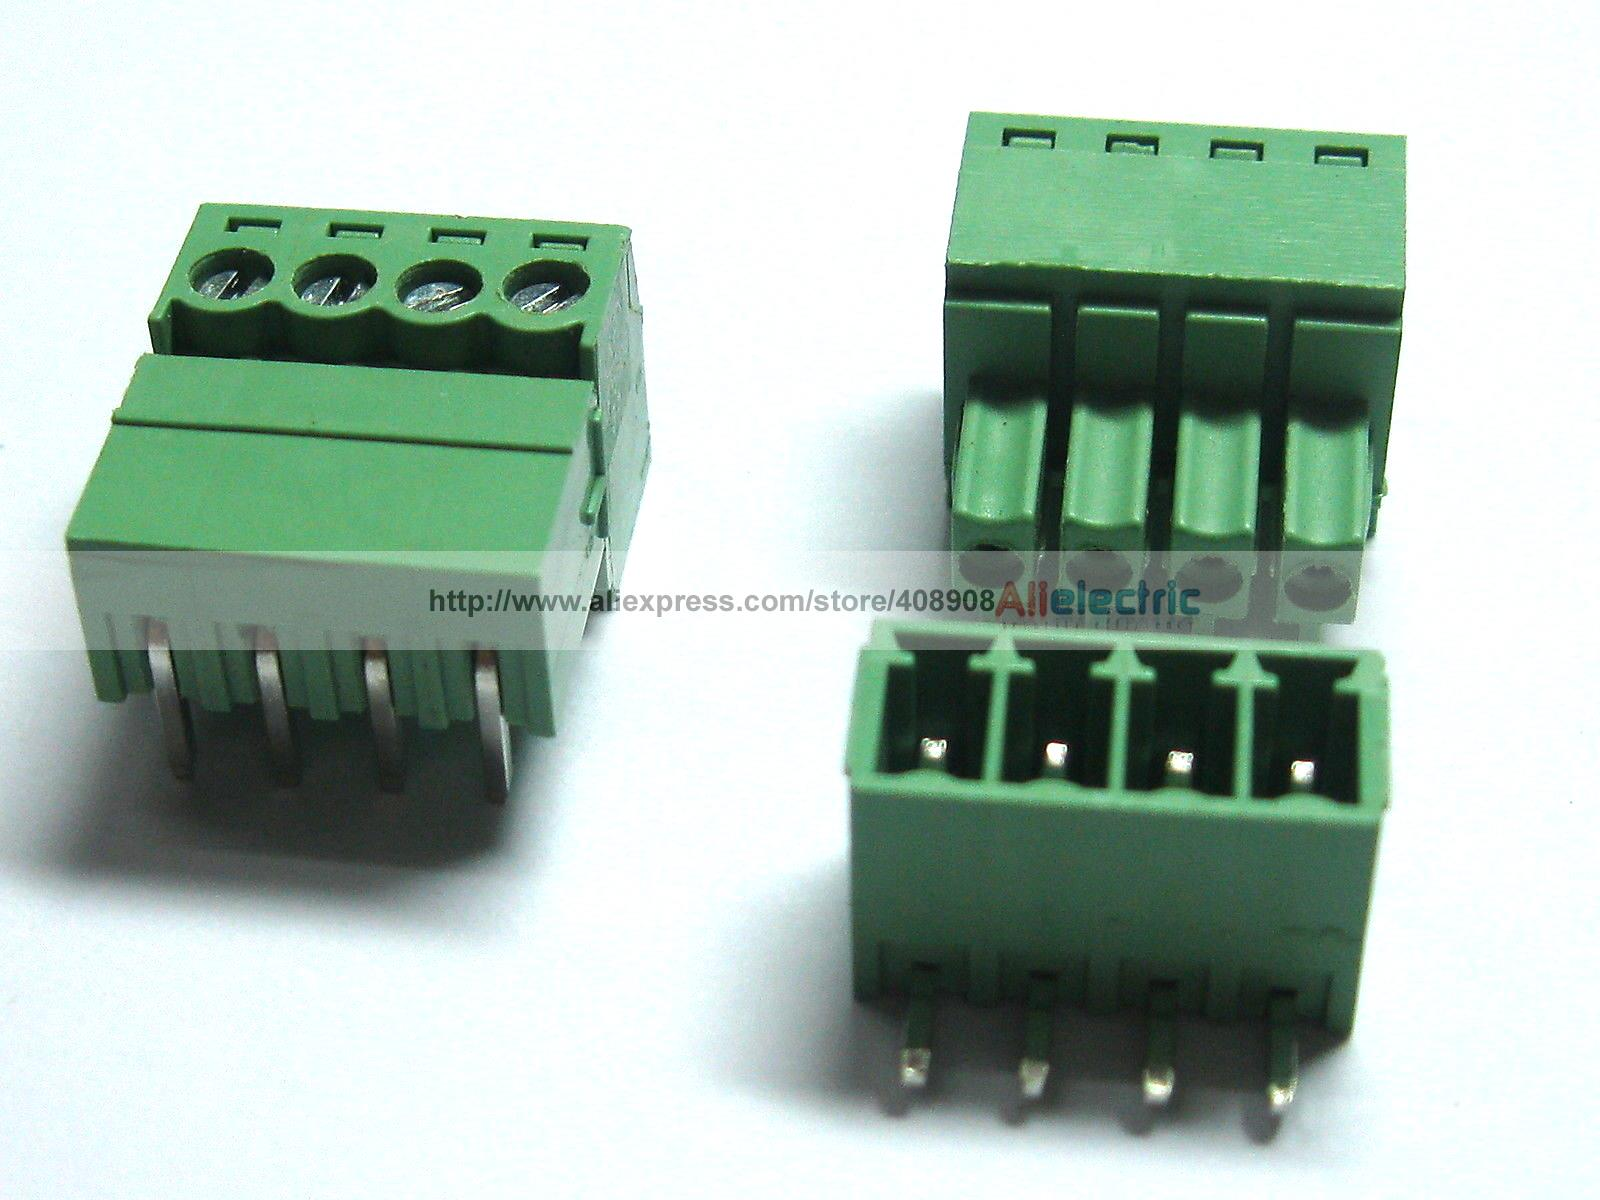 150 Pcs Screw Terminal Block Connector 3.81mm Angle 4 Pin Green Pluggable Type <br><br>Aliexpress